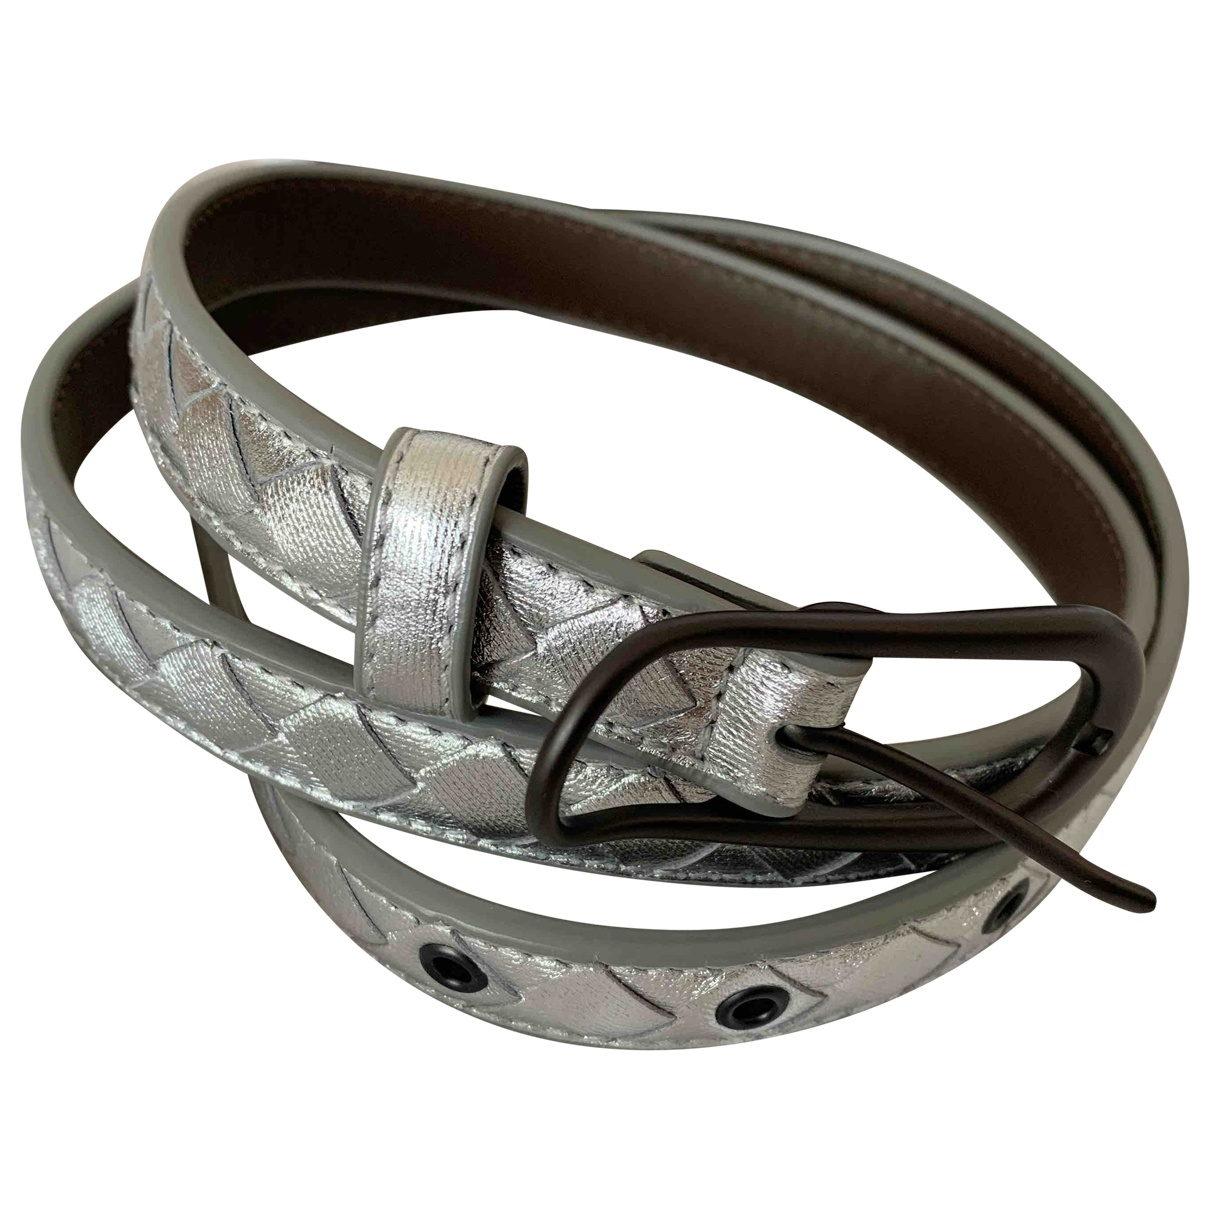 Bottega Veneta \N Silver Leather belt for Women 80 cm